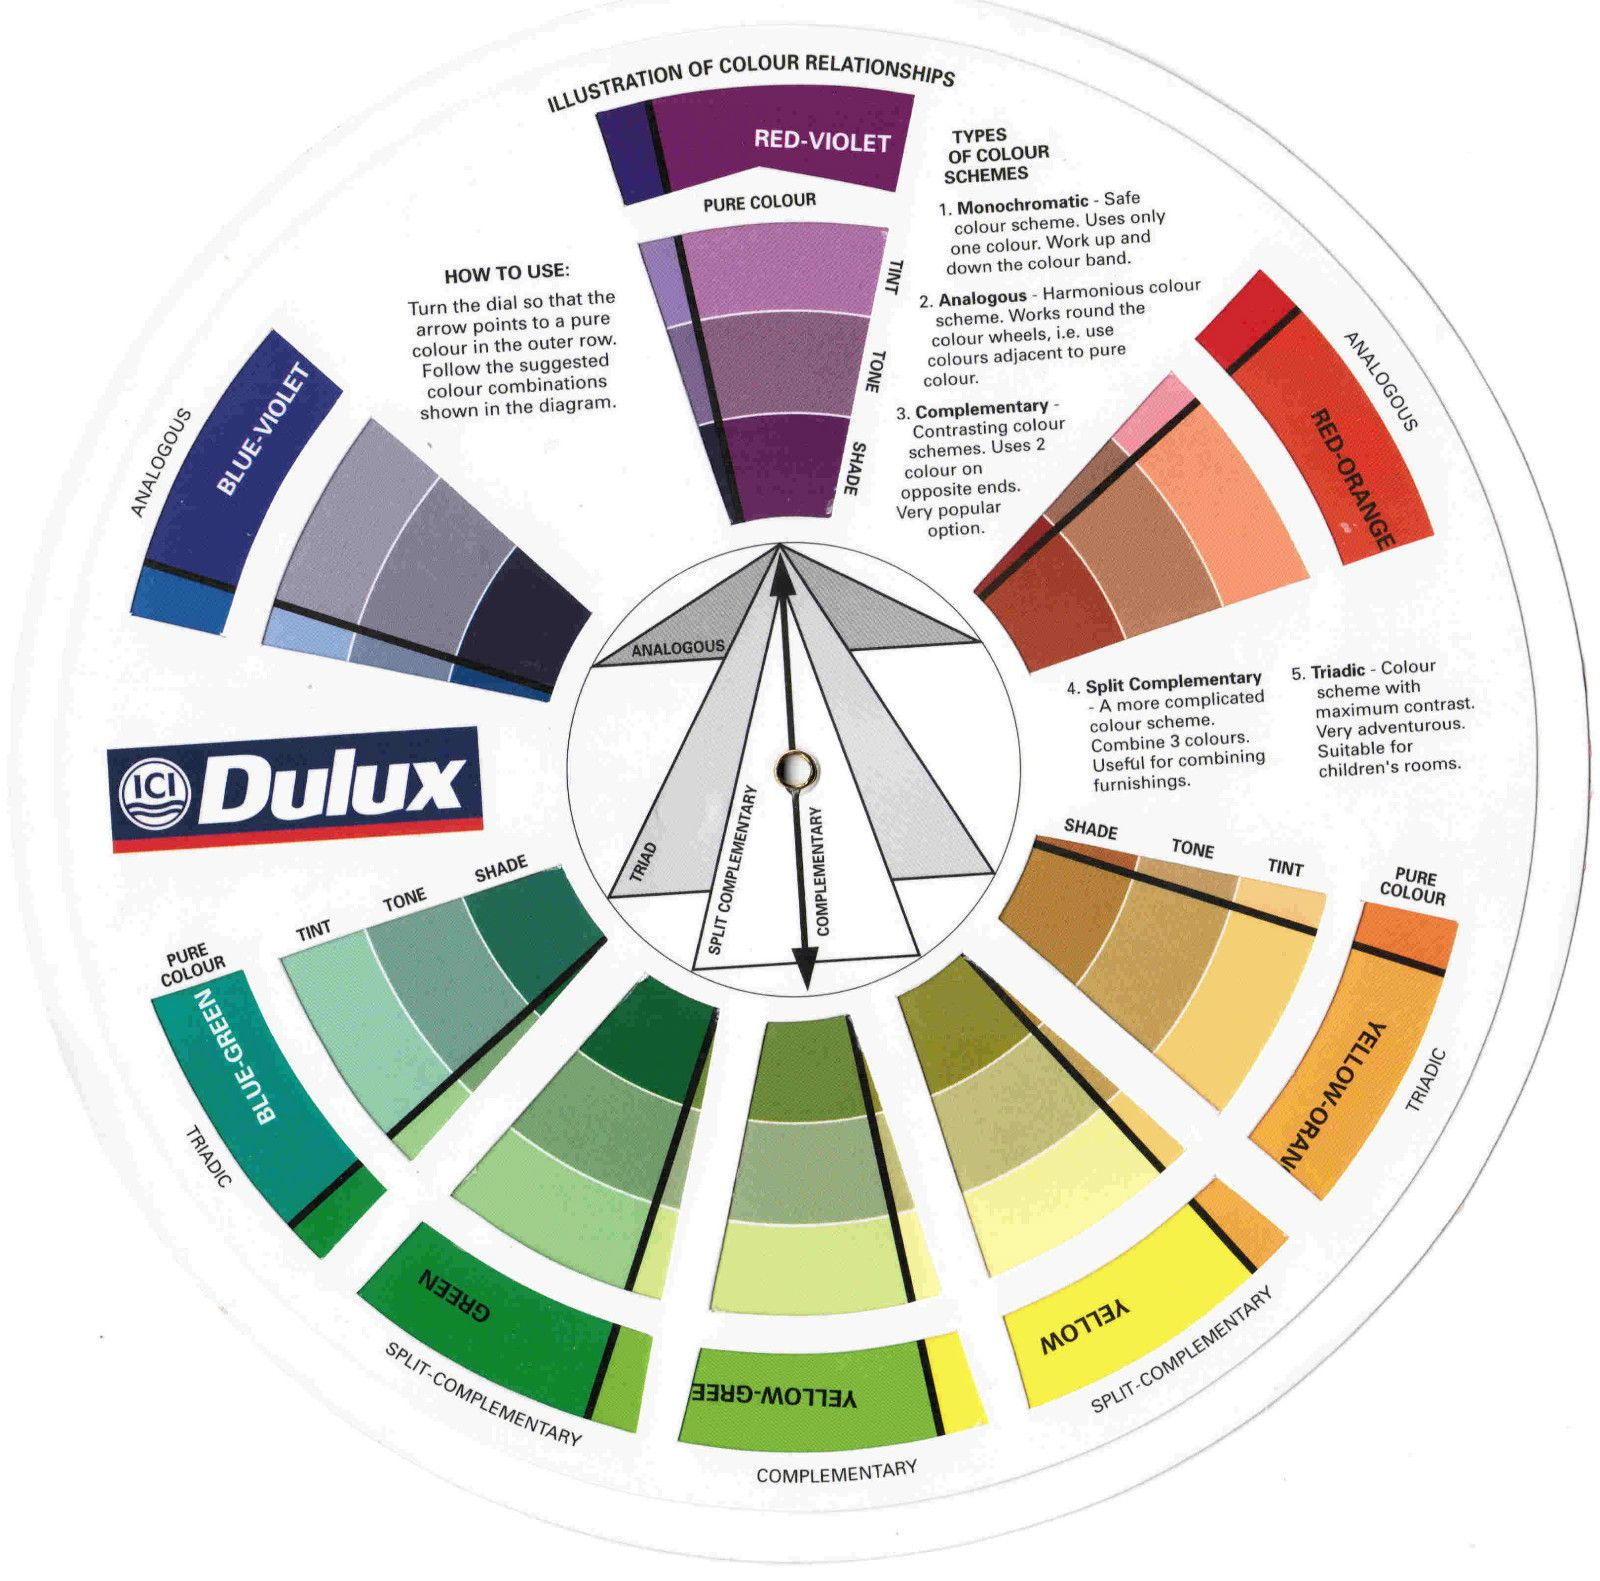 ICI Dulux Color Wheel,Dulux Paint Colour Chart,Akzo Nobel